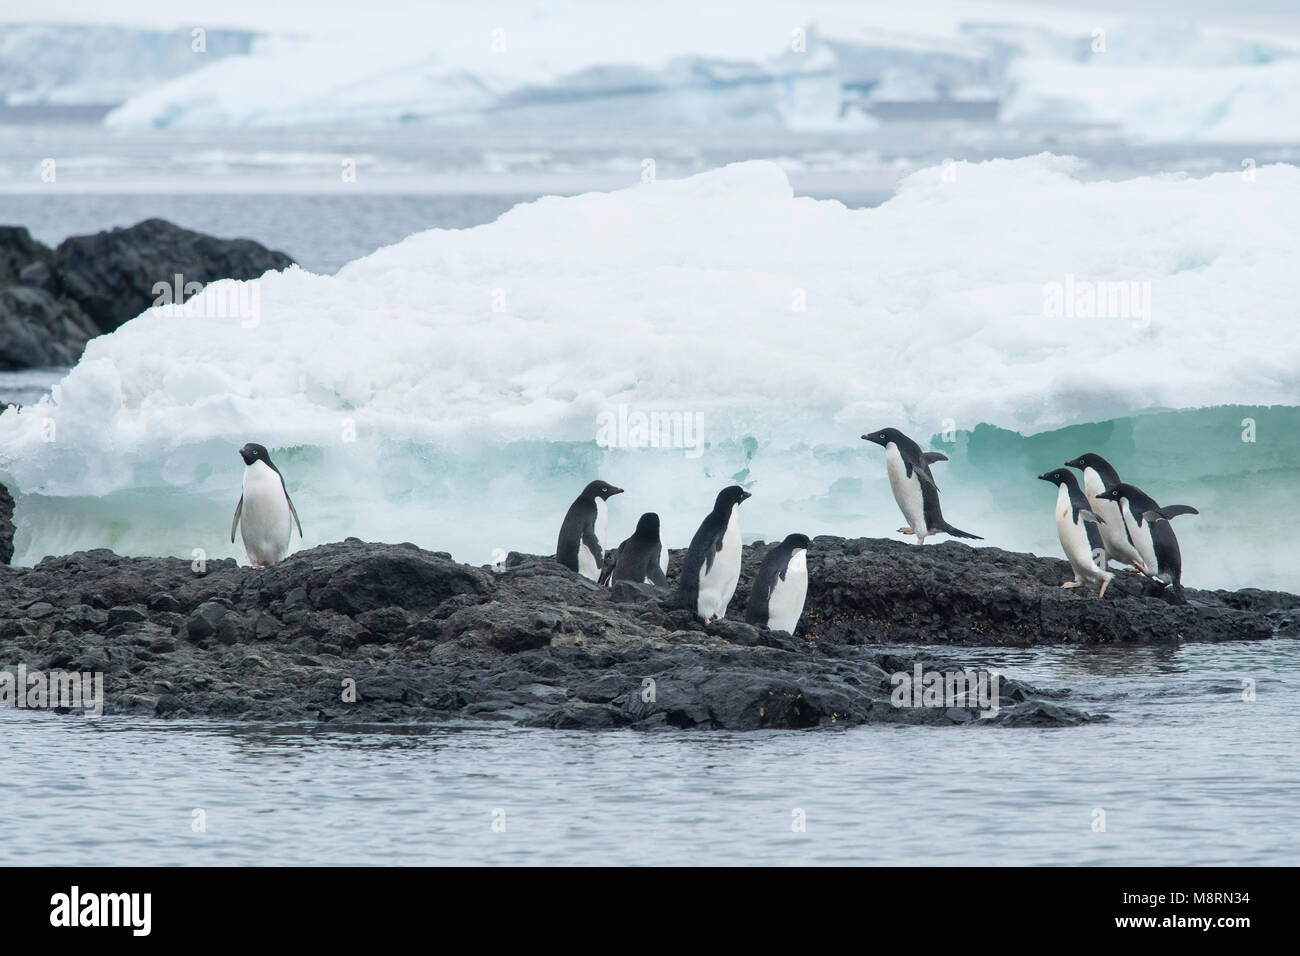 A group of Adelie penguins walk along the ice at Brown Bluff, Antarctica. - Stock Image